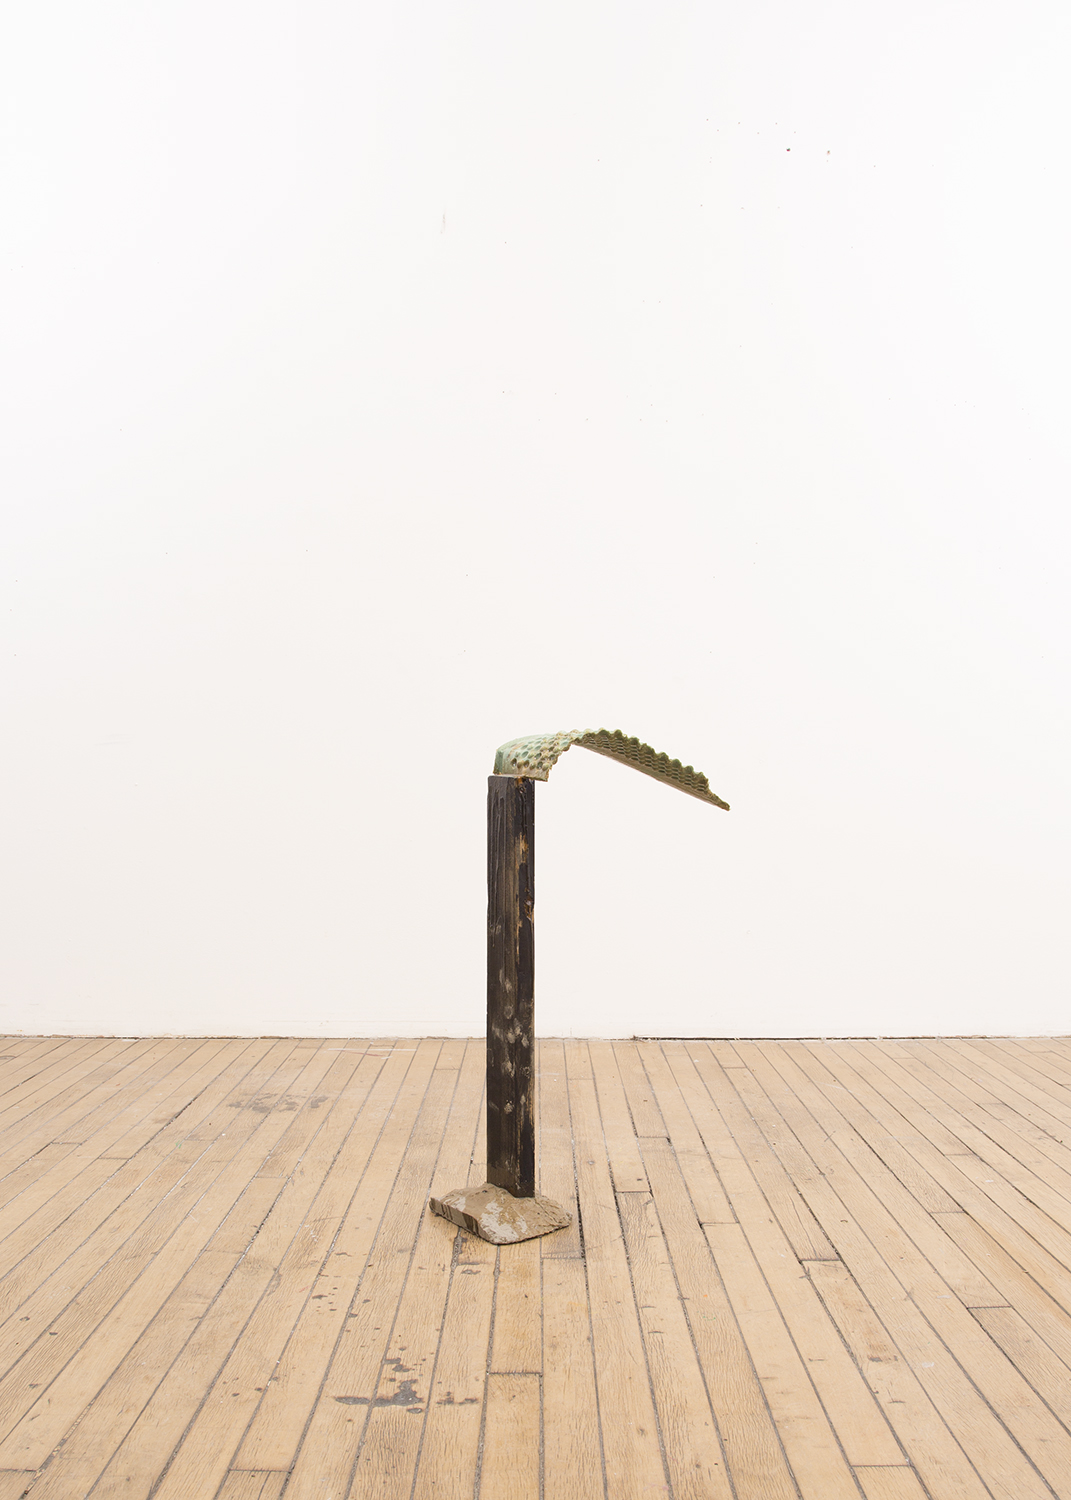 Untitled (disarmed)